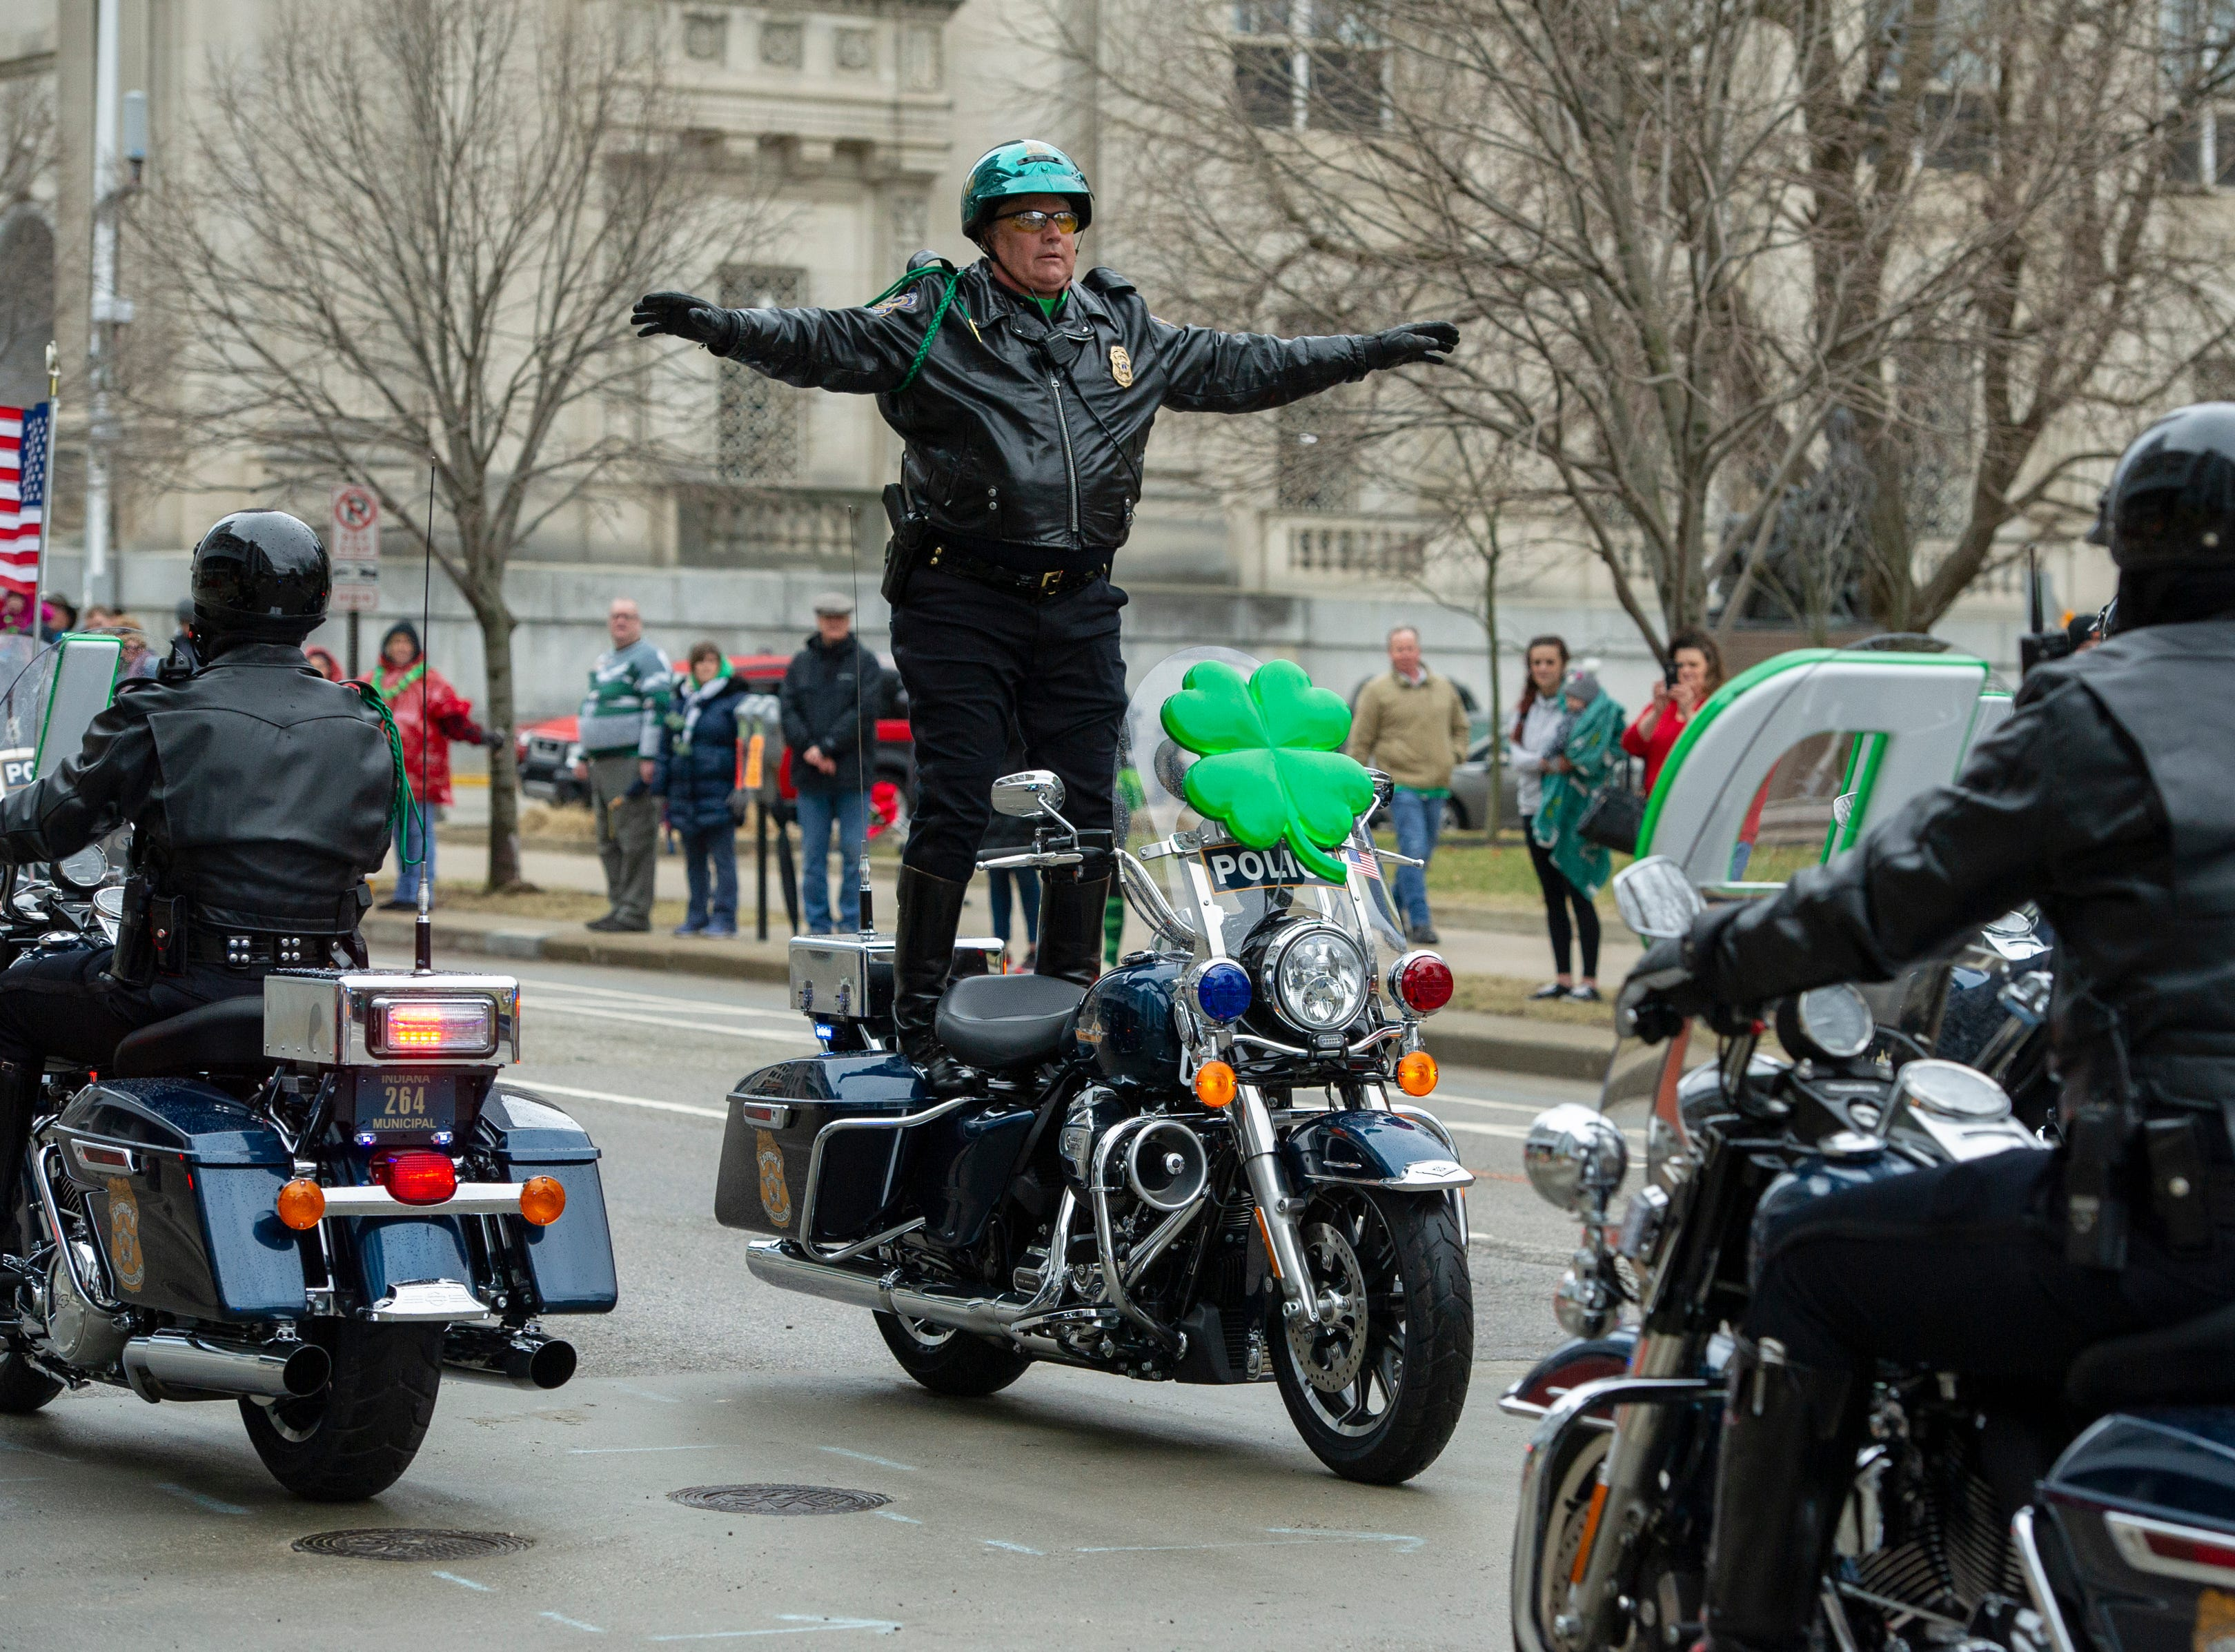 The 39th annual St. Patrick's Day Parade navigated the streets of Indianapolis, Friday, March 15, 2019.